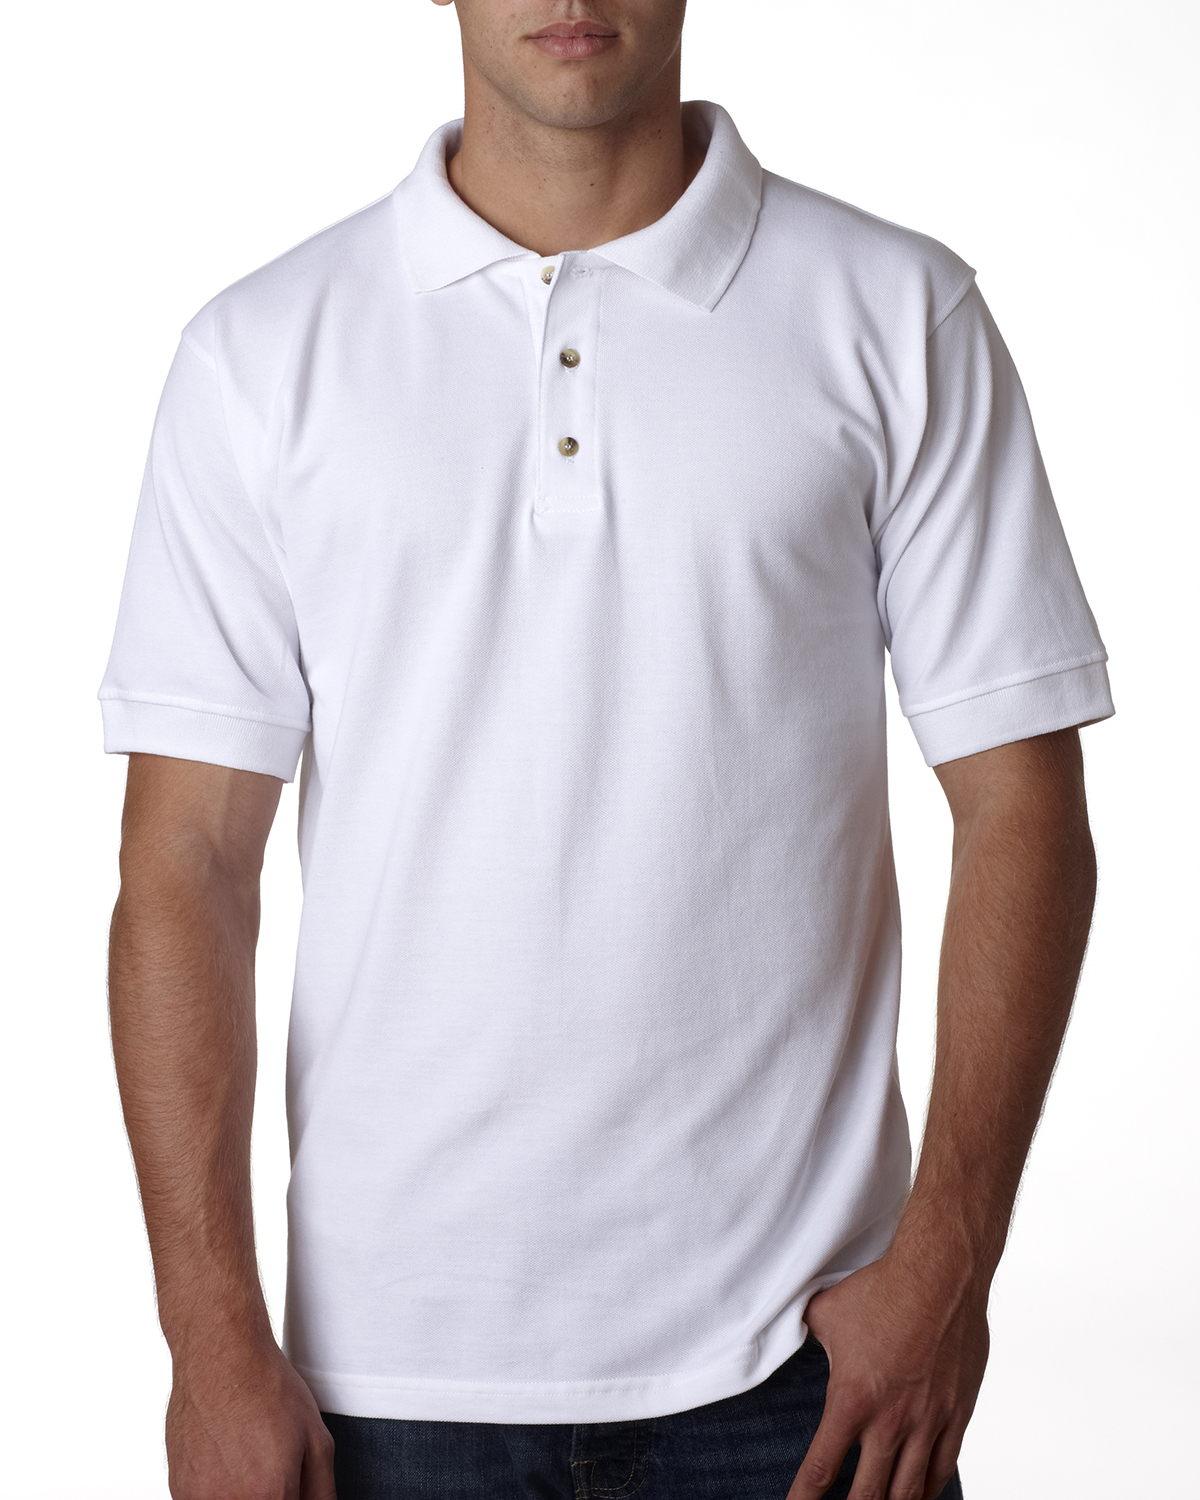 Adult 6.1 oz., Cotton Pique Polo